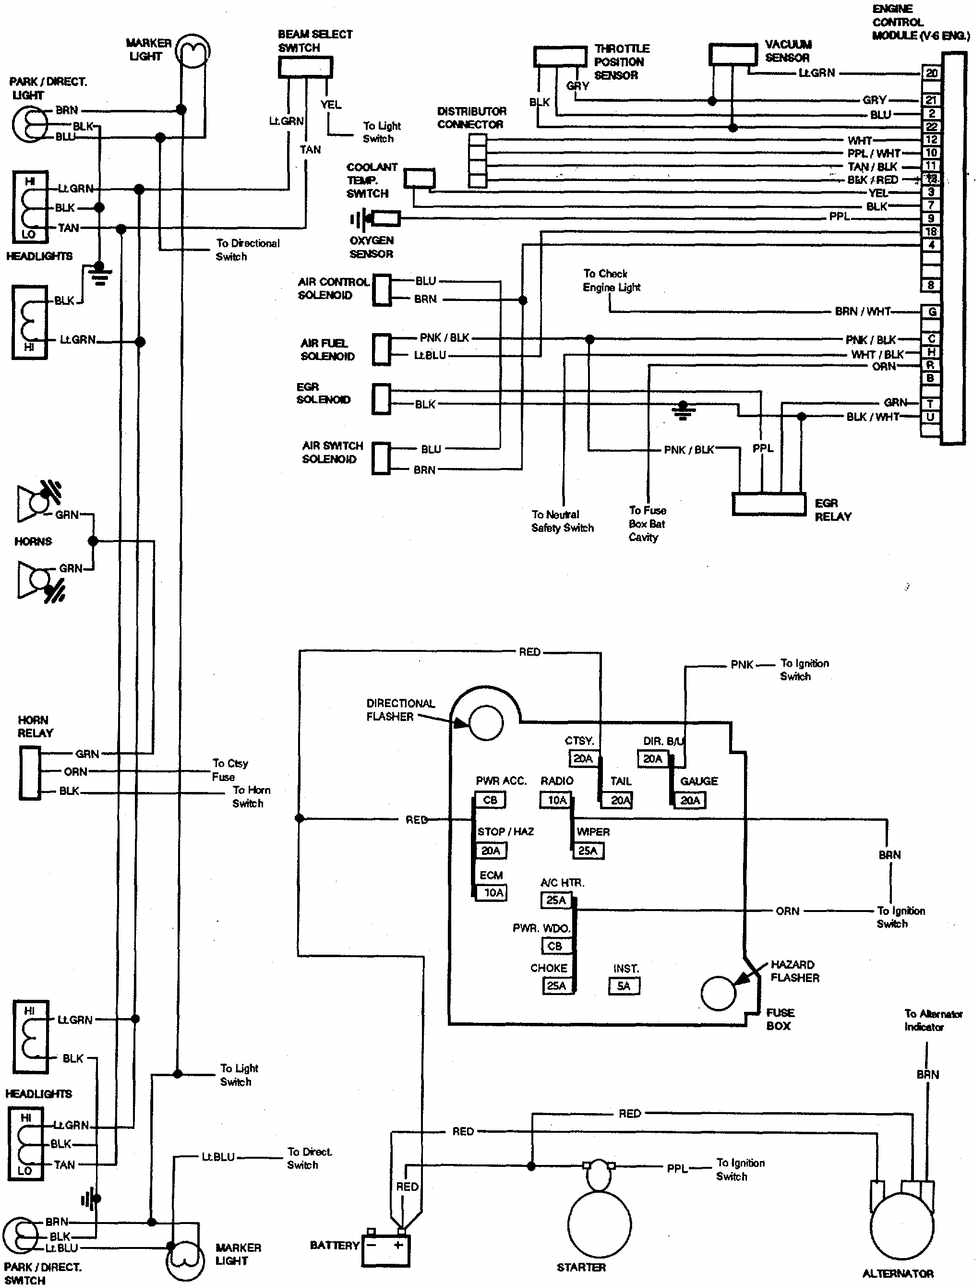 gm truck wiring diagrams gm wiring diagrams chevrolet v8 trucks 1981 1987 electrical wiring diagram